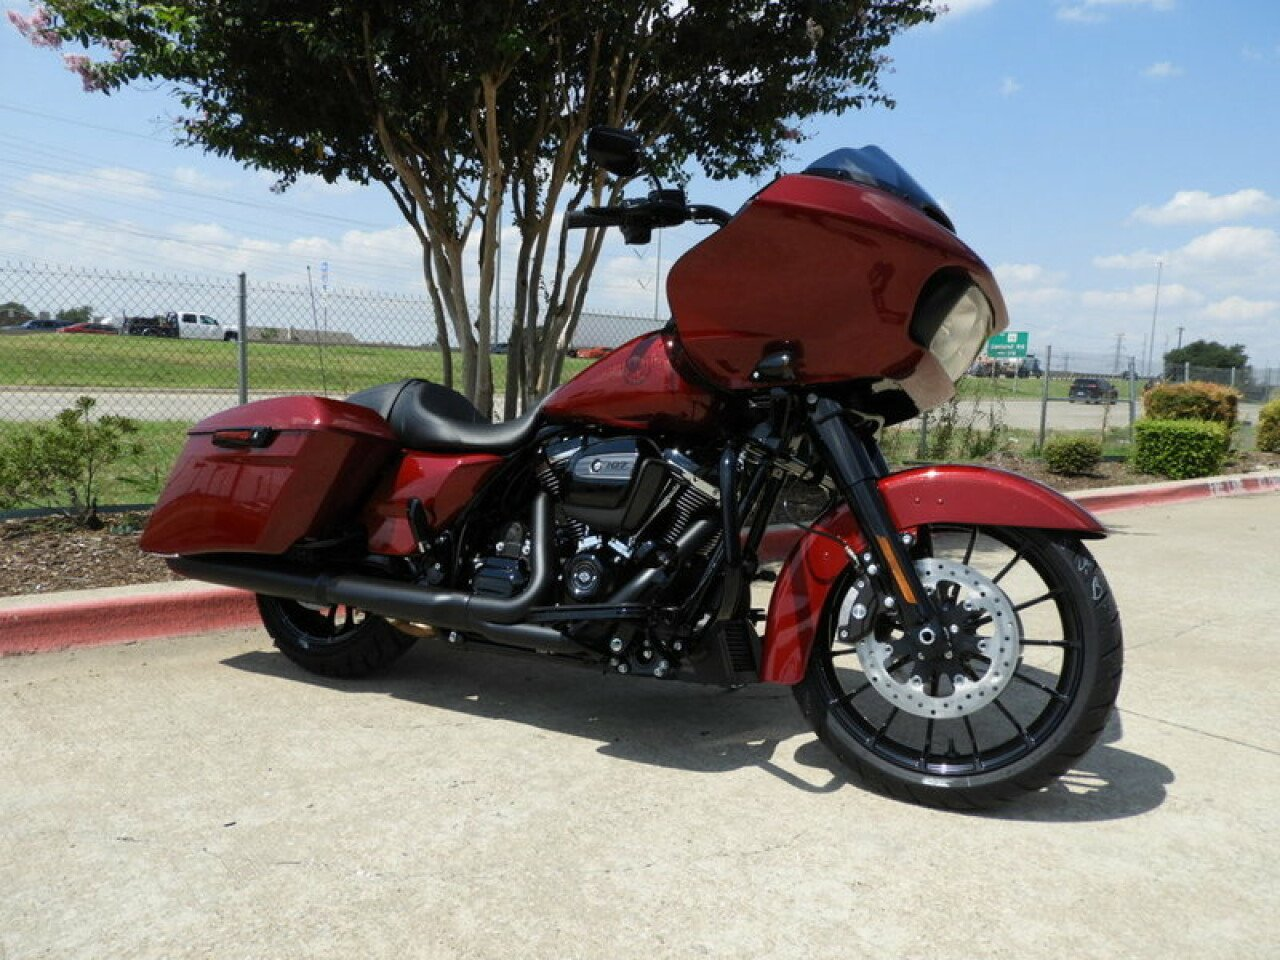 Harley Davidson Touring Motorcycles For Sale Dallas Tx >> 2018 Harley-Davidson Touring Road Glide Special for sale near Garland, Texas 75041 - Motorcycles ...